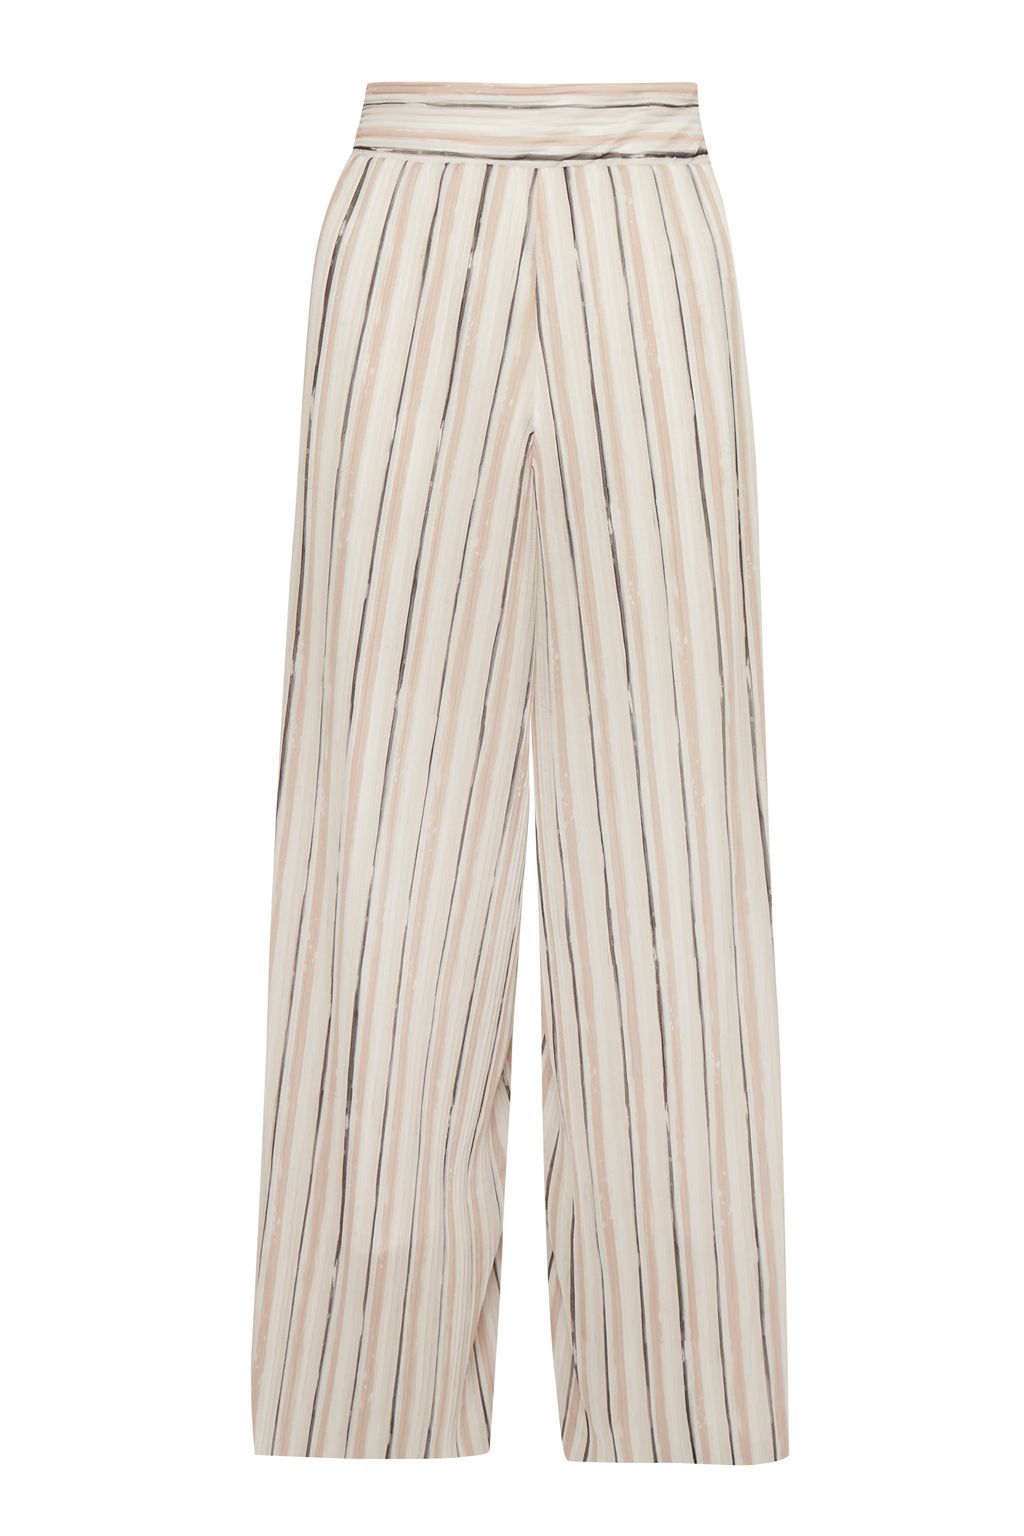 Great Plains Brush Stroke Culottes, White